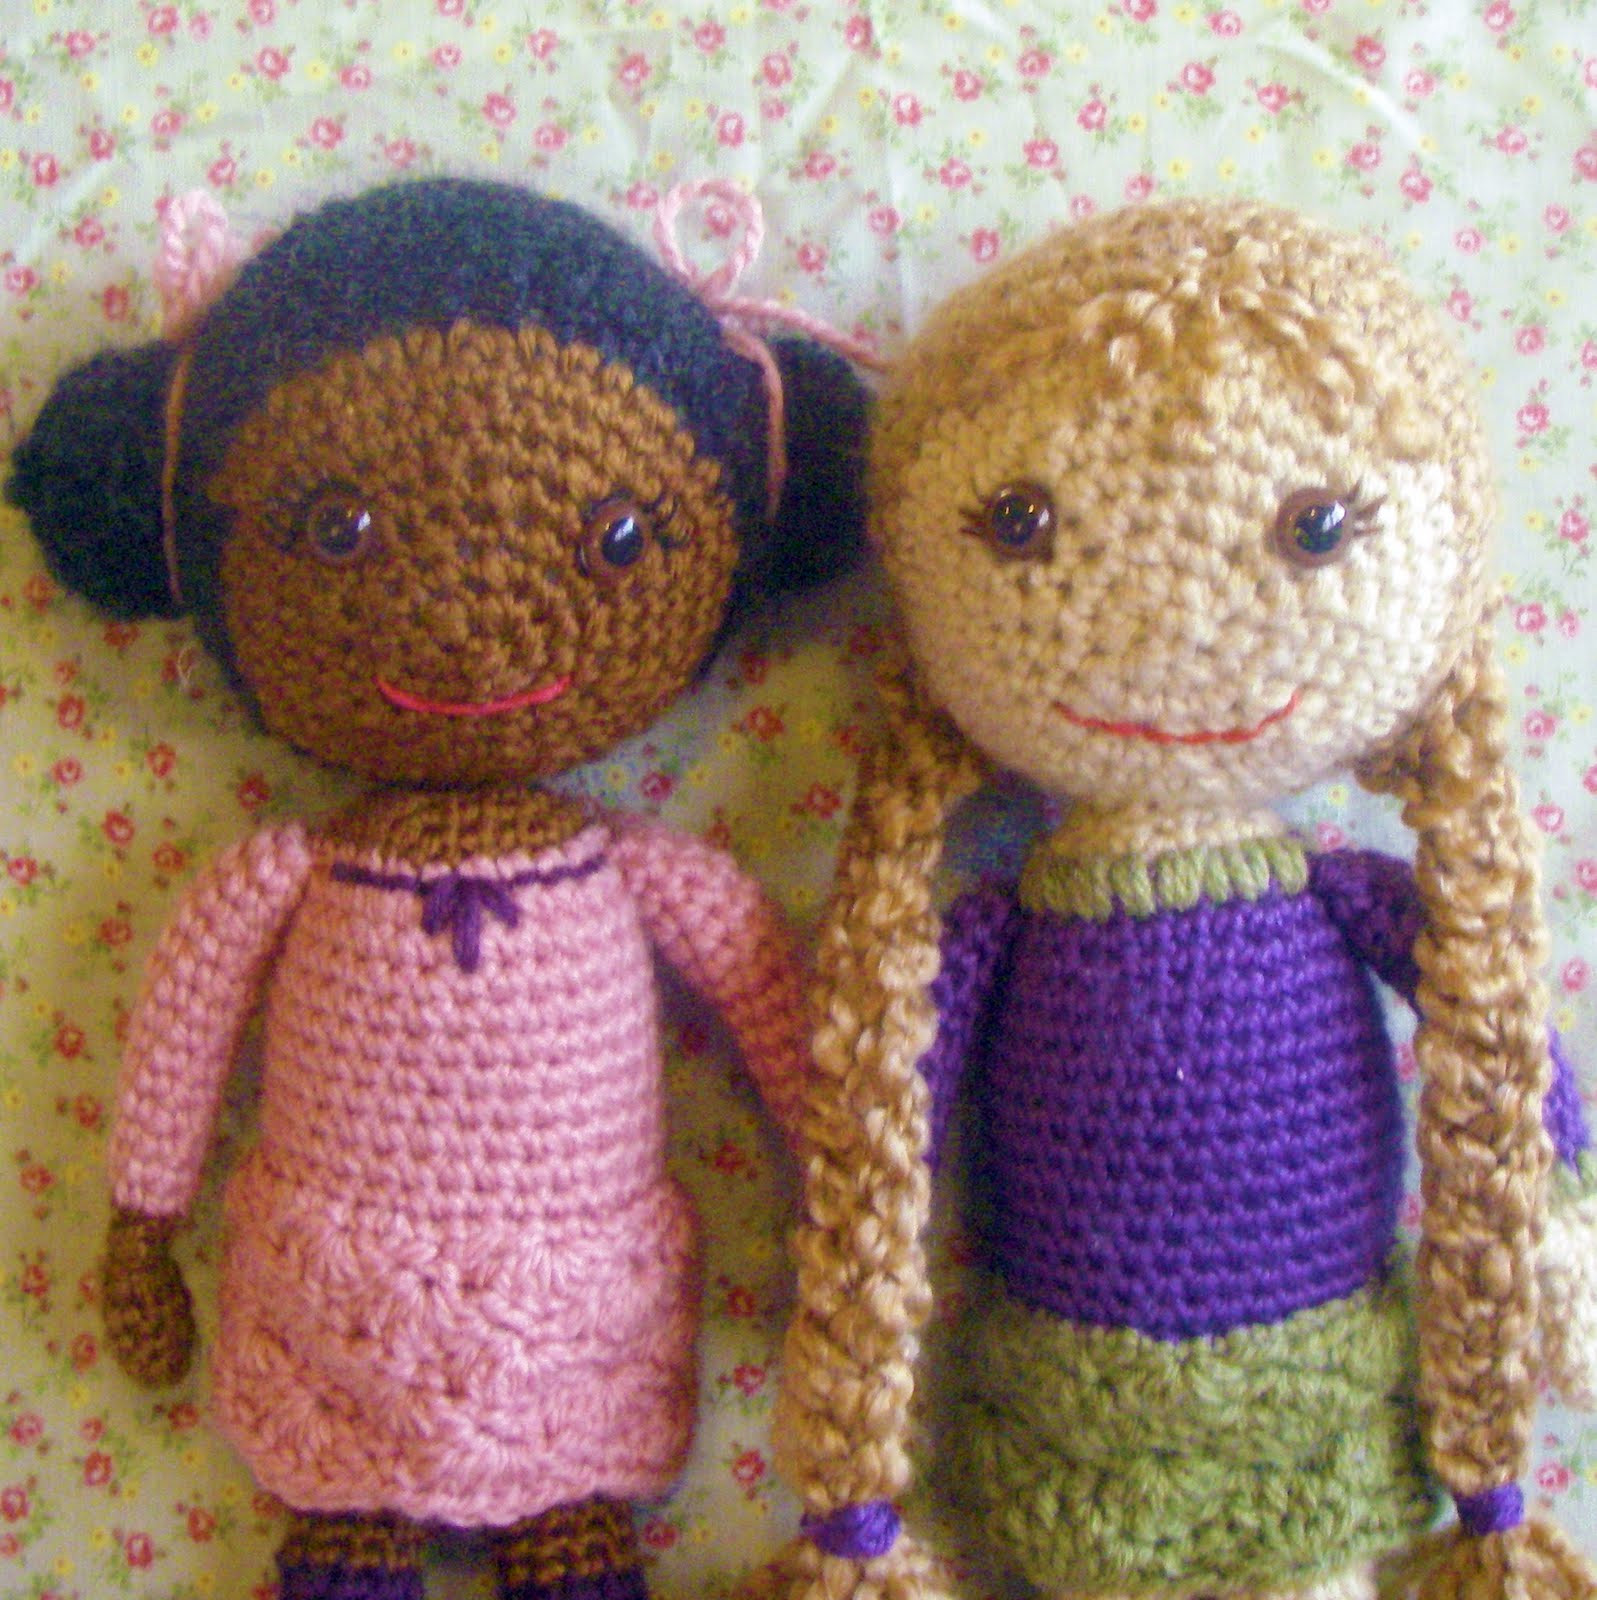 "Doll Patterns Inspirational 12"" Doll Crochet Pattern Mamacheemamachee Of Doll Patterns Fresh Spirit Dolls"